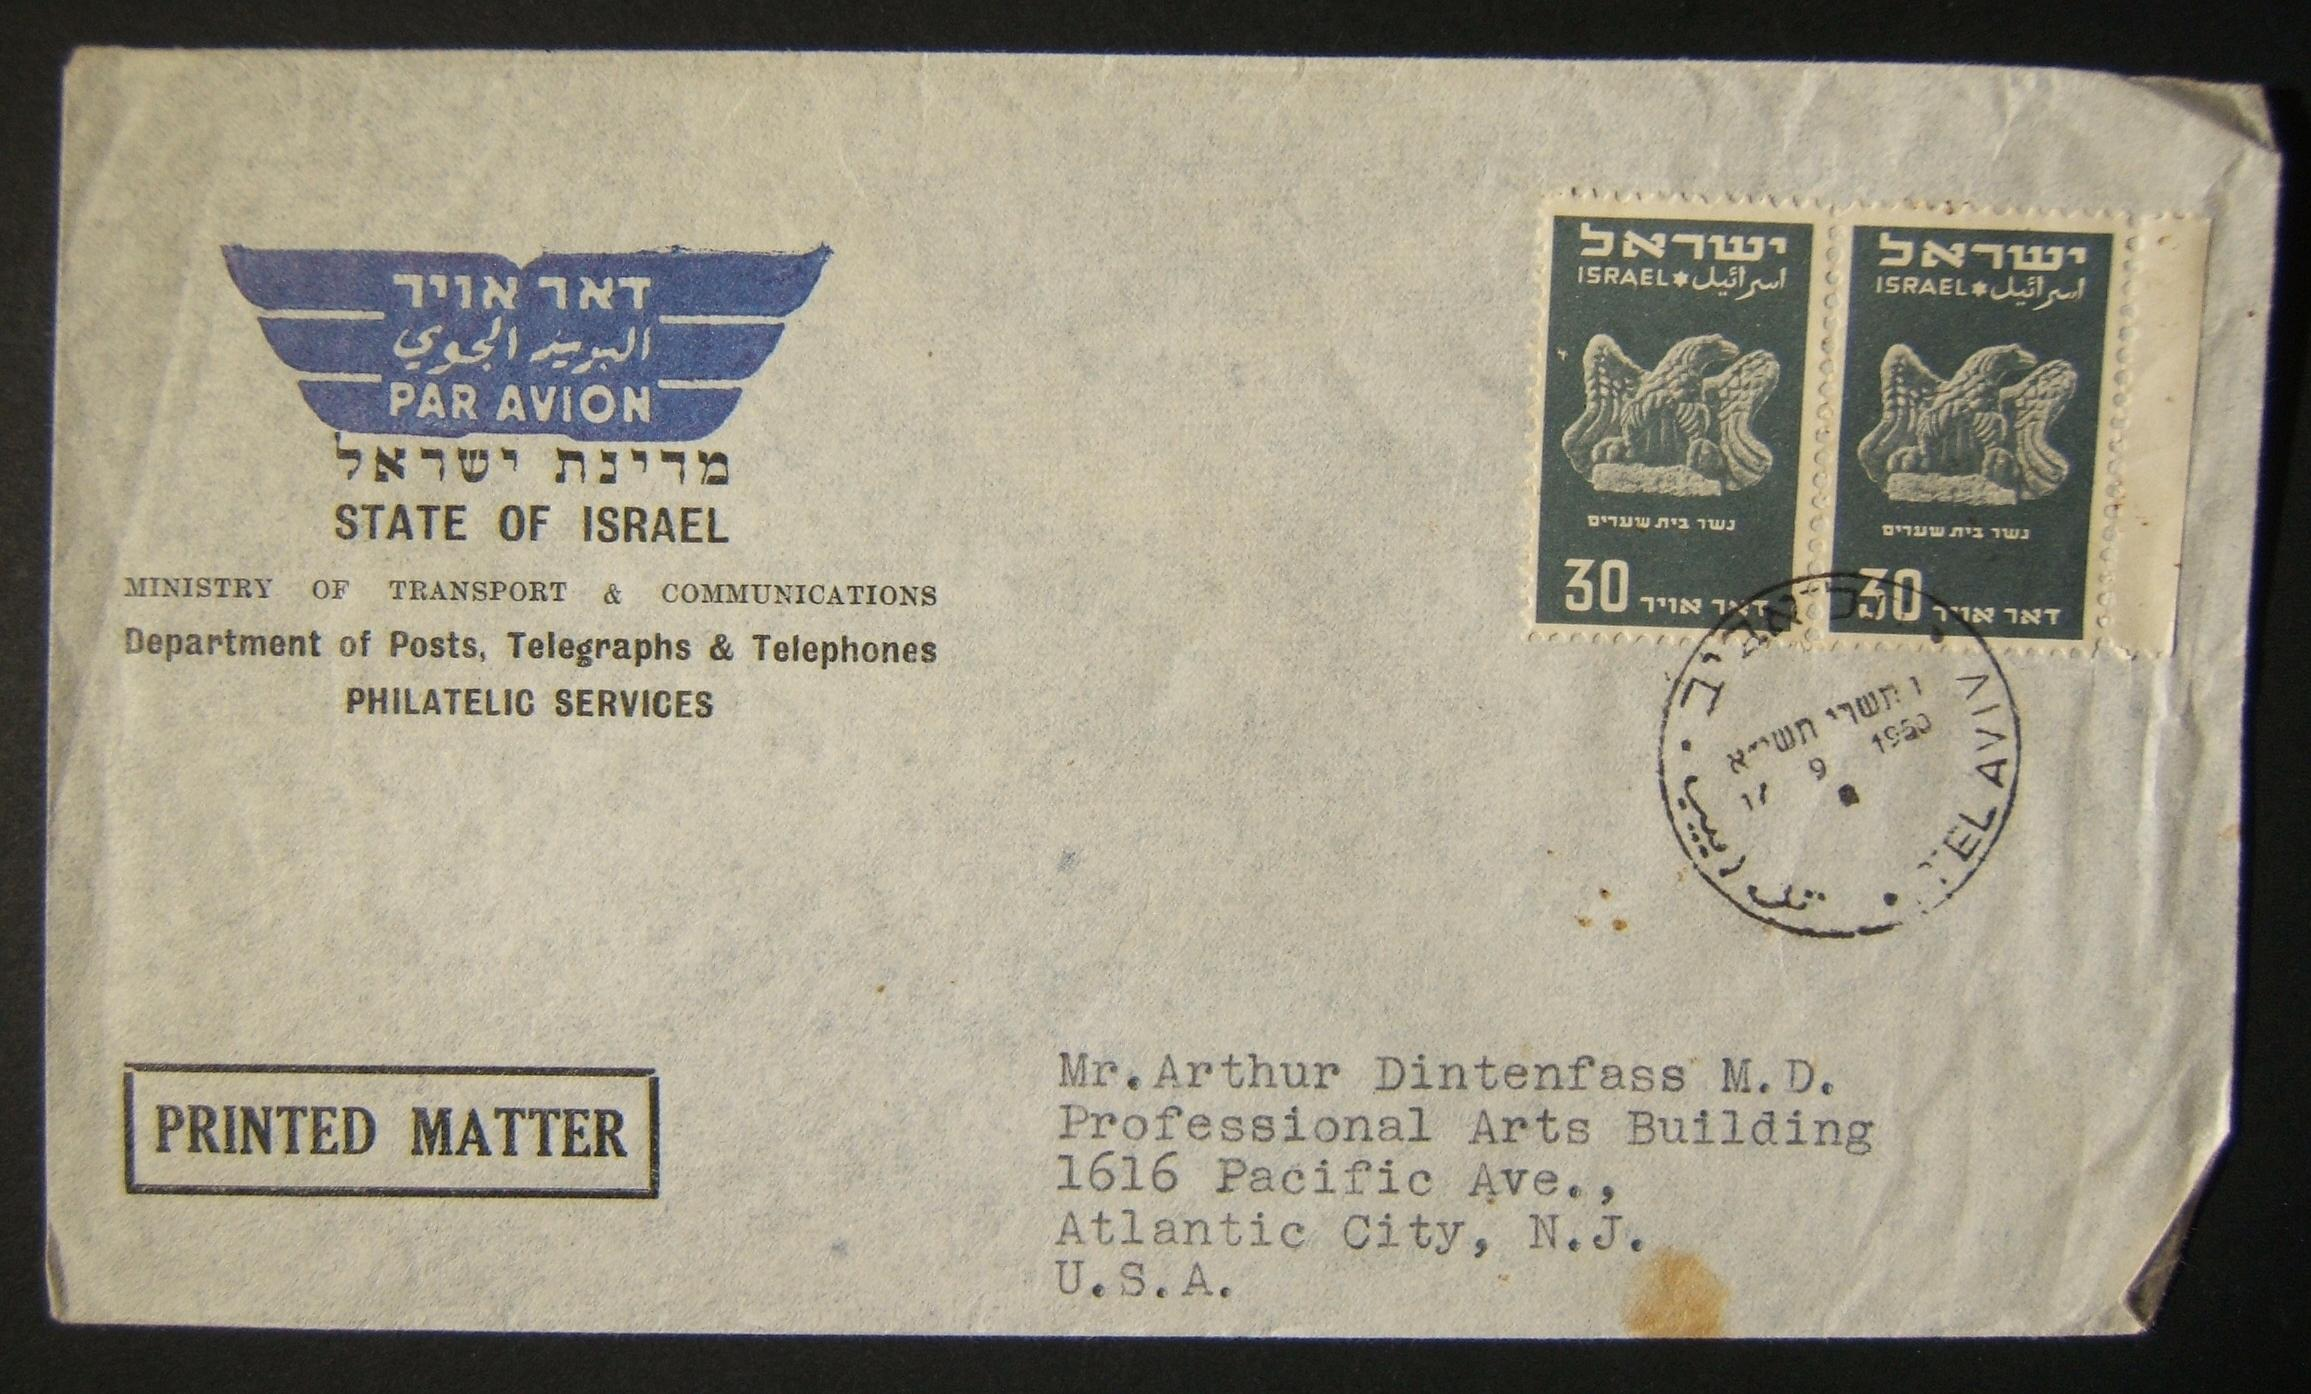 1950 1st airmail / PO's, rates & routes: 17-9-1950 government airmail stationary printed matter cover ex TLV (Philatelic Service) to NEW JERSEY franked 60pr at the FA-2a period pm